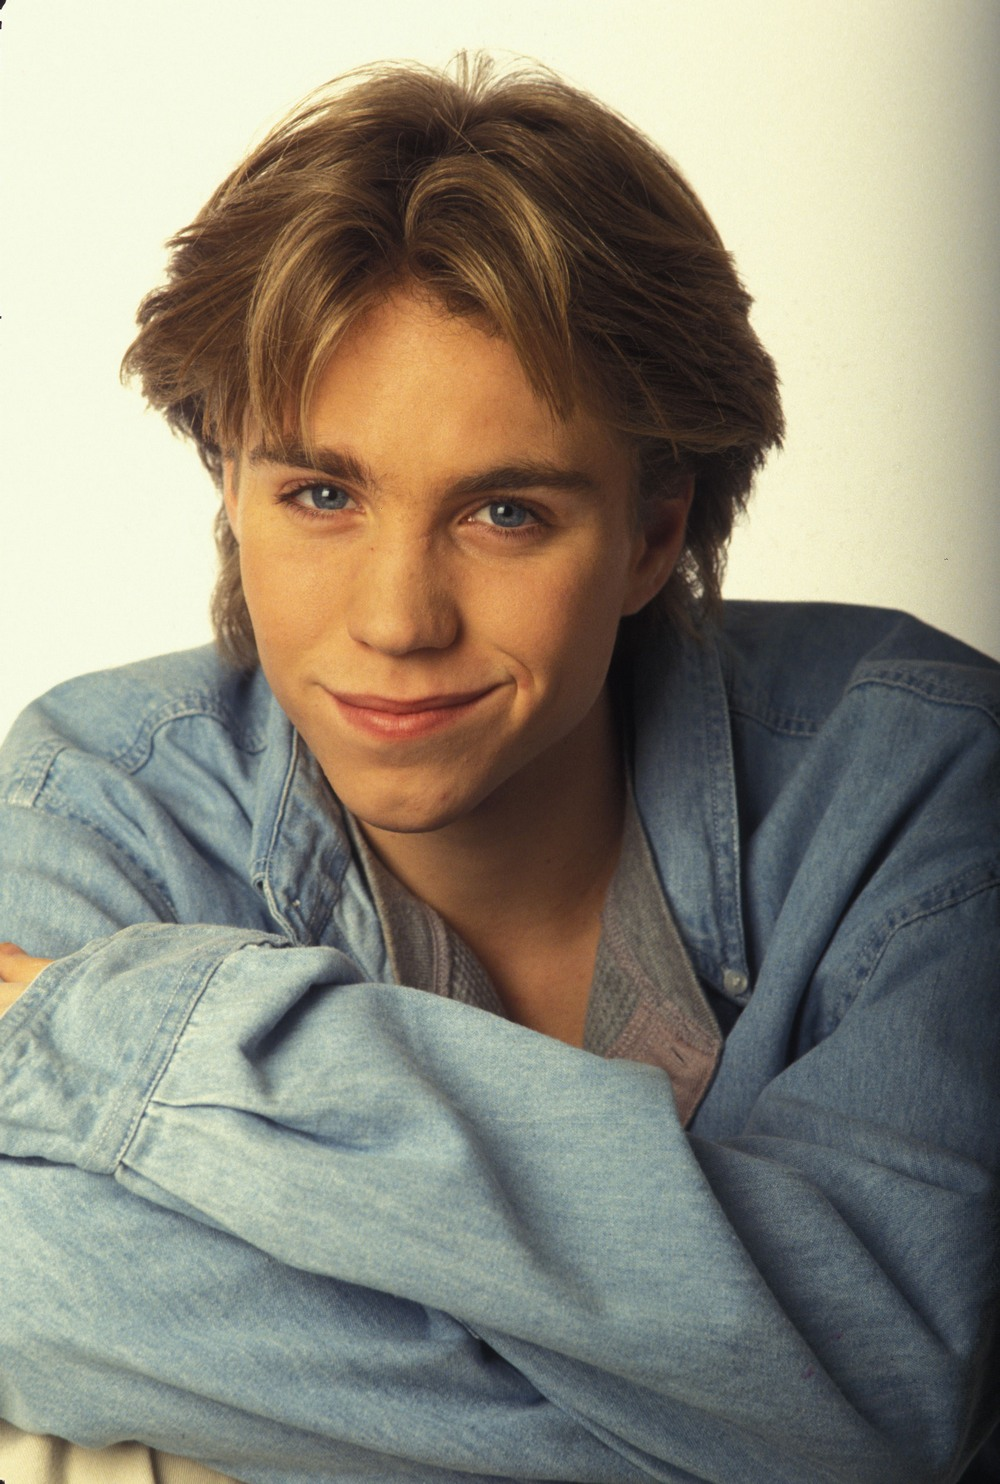 Jonathan Brandis Photo Credit: Christopher Voelker_Shooting Starª